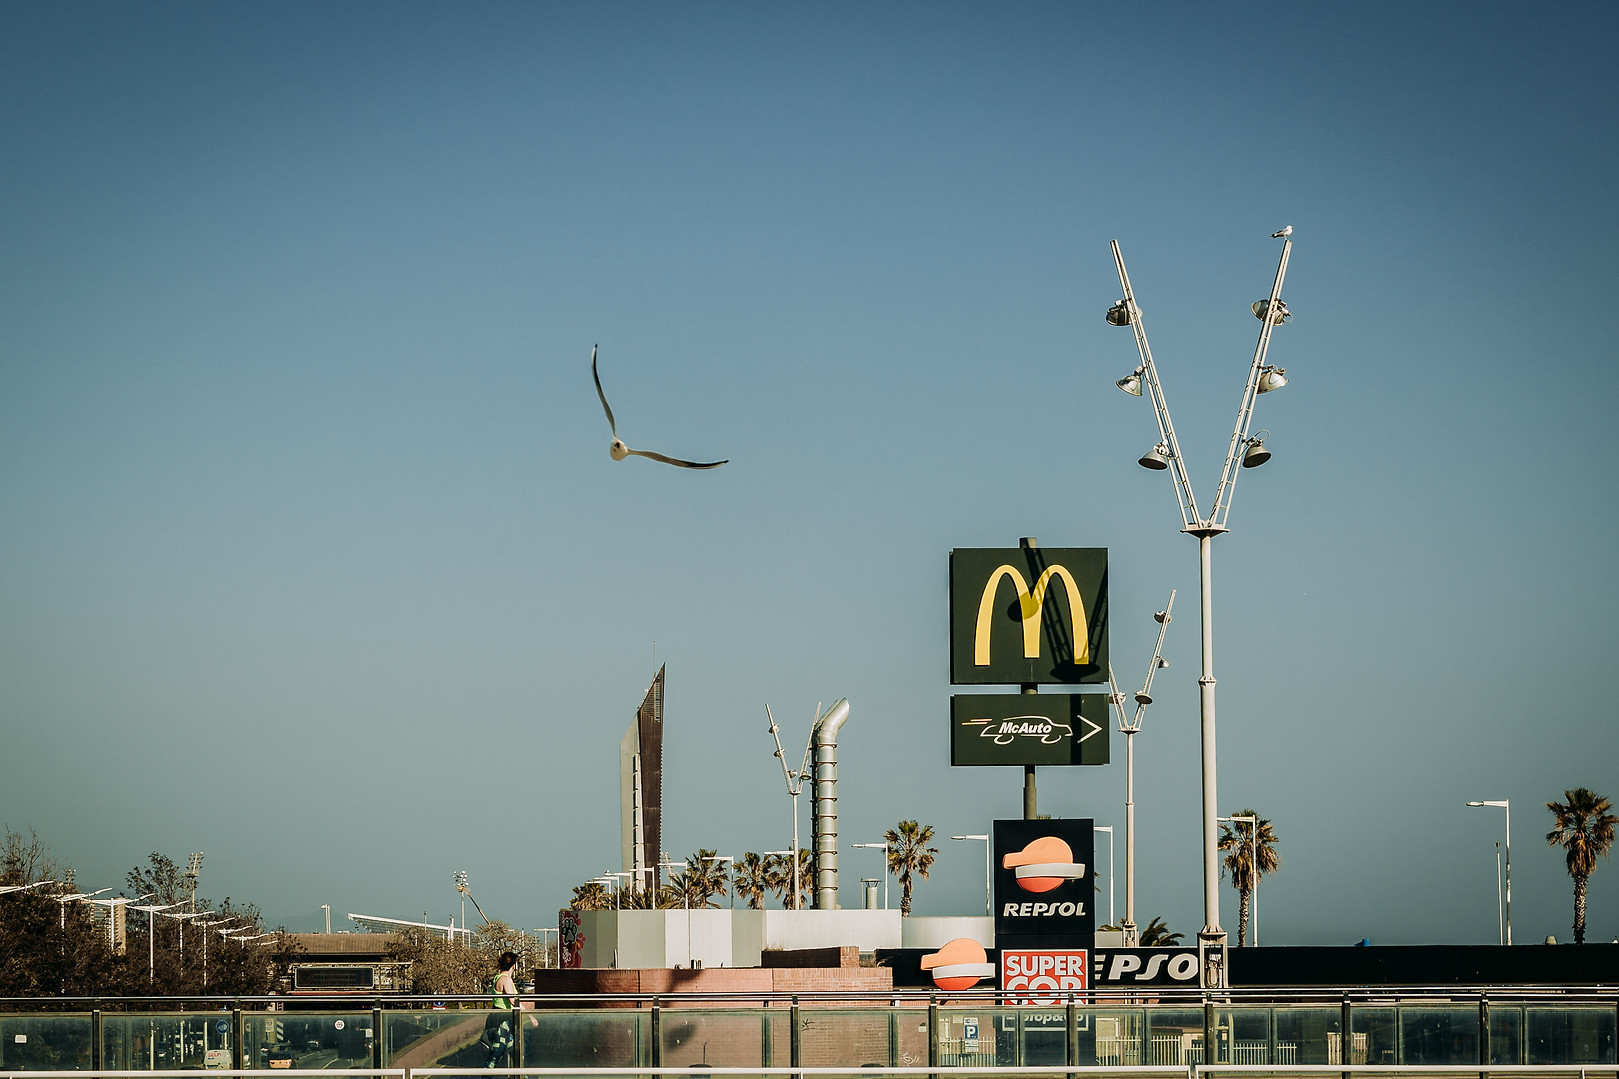 Charlotte Deckers Photography | Travel Photo Barcelona | Cityscape McDonalds